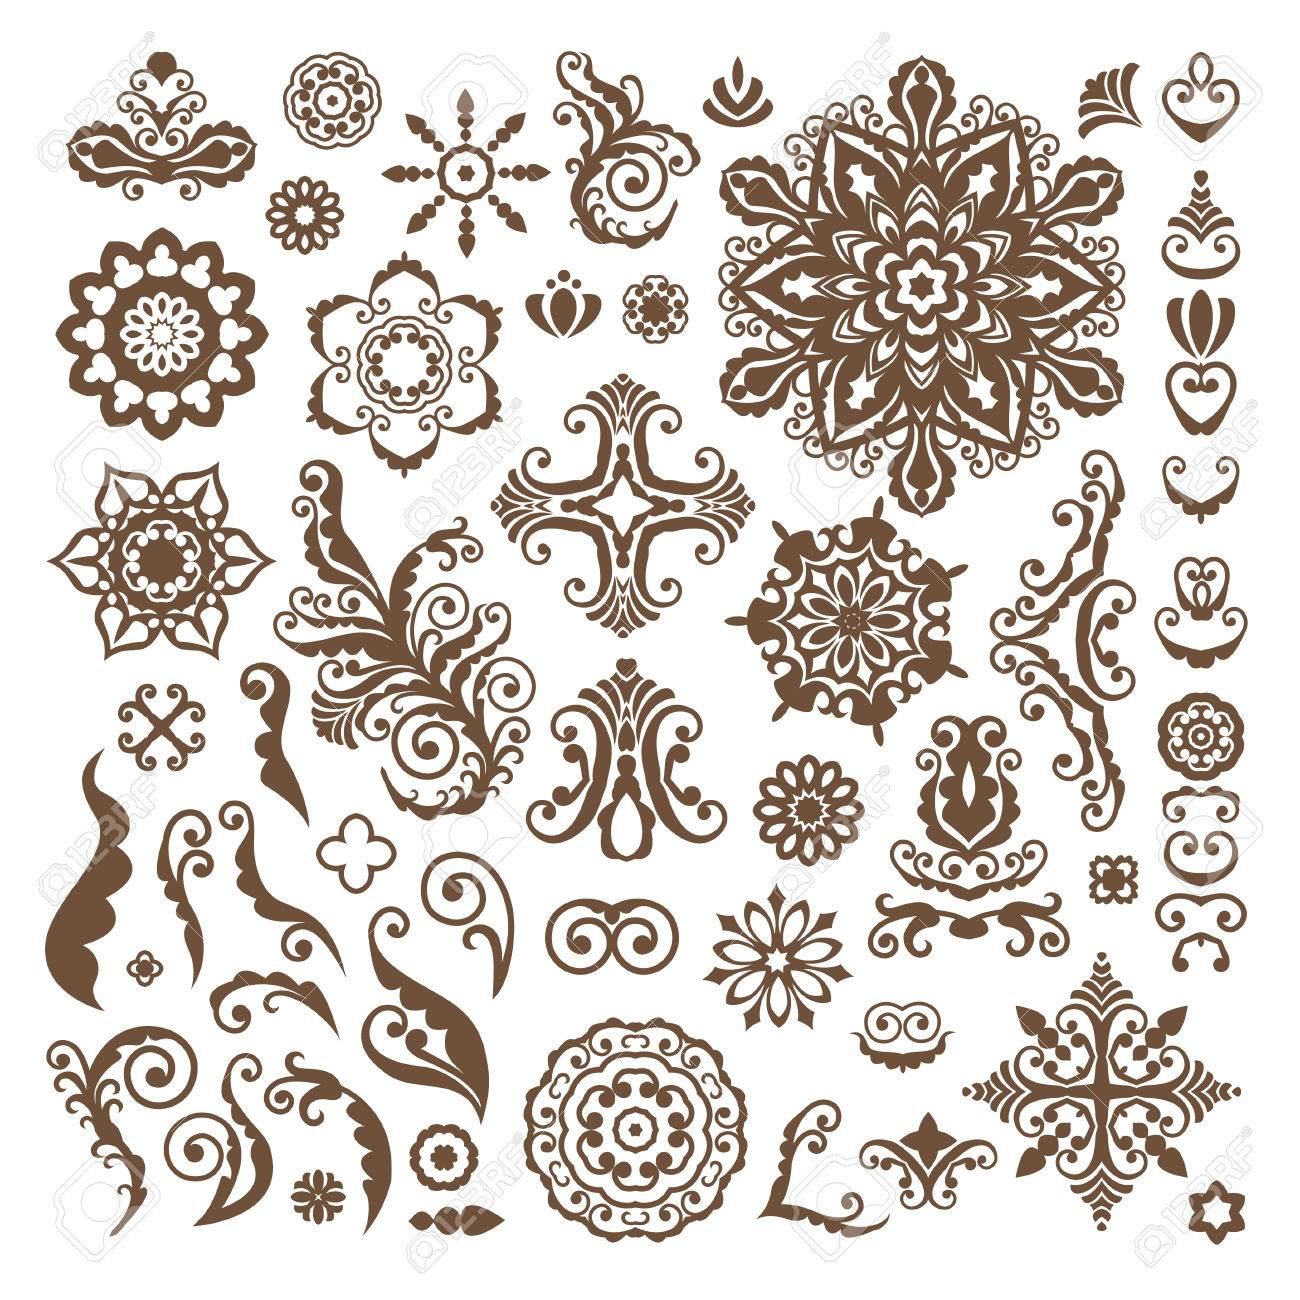 Abstract Floral Illustration Design Elements On White Background